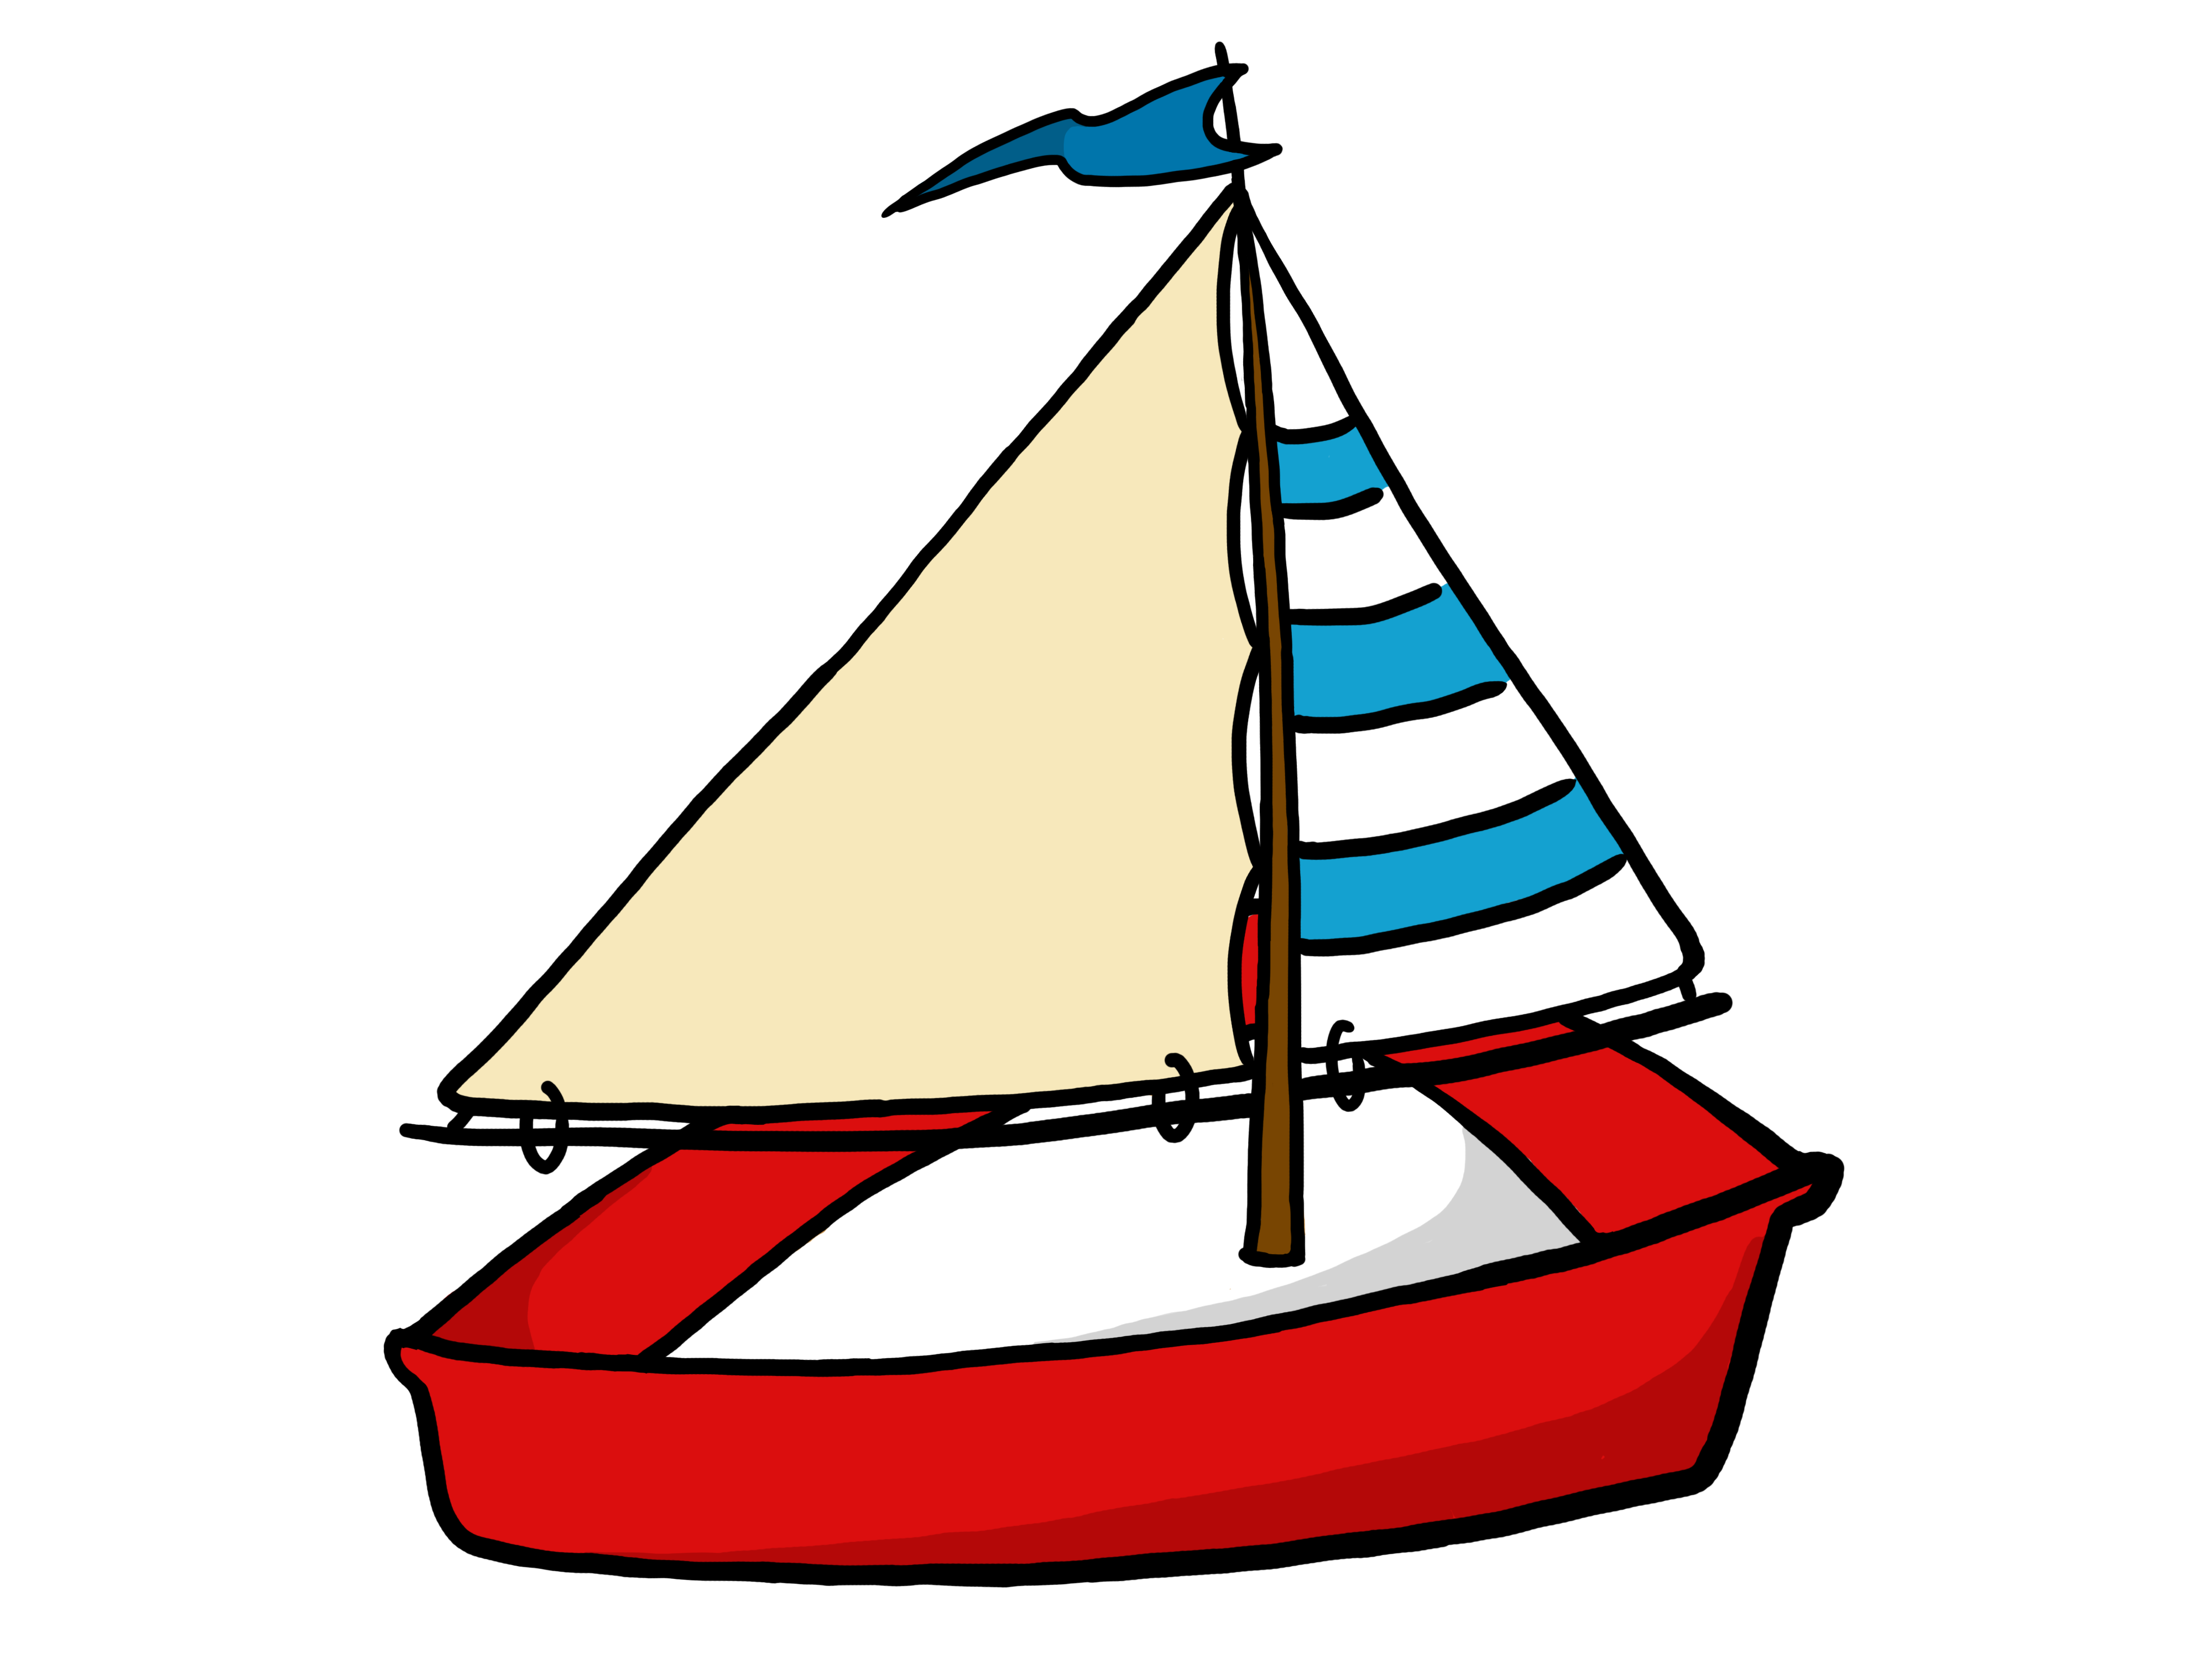 Boating Clipart Free Clipart Images-Boating clipart free clipart images-2